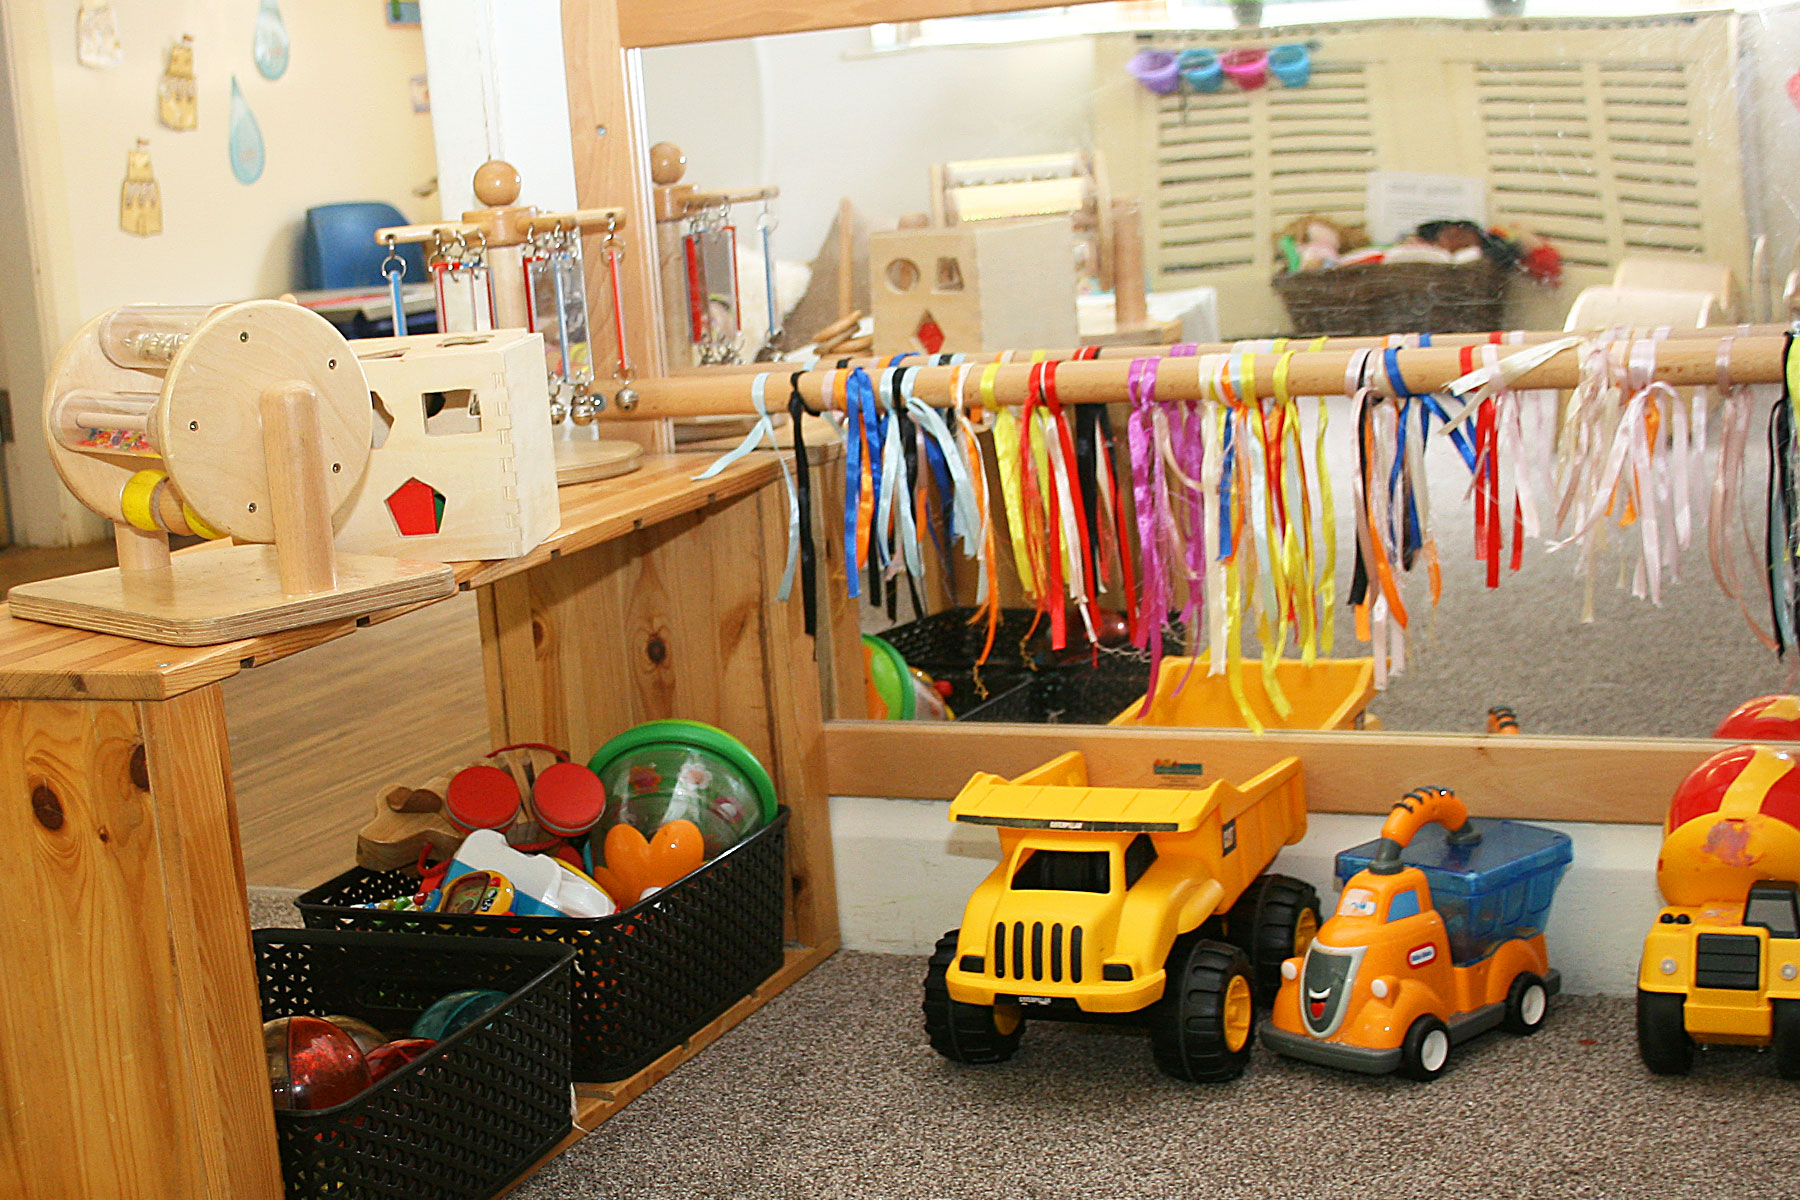 Image Gallery - Nursery and Pre-School in Barnsley